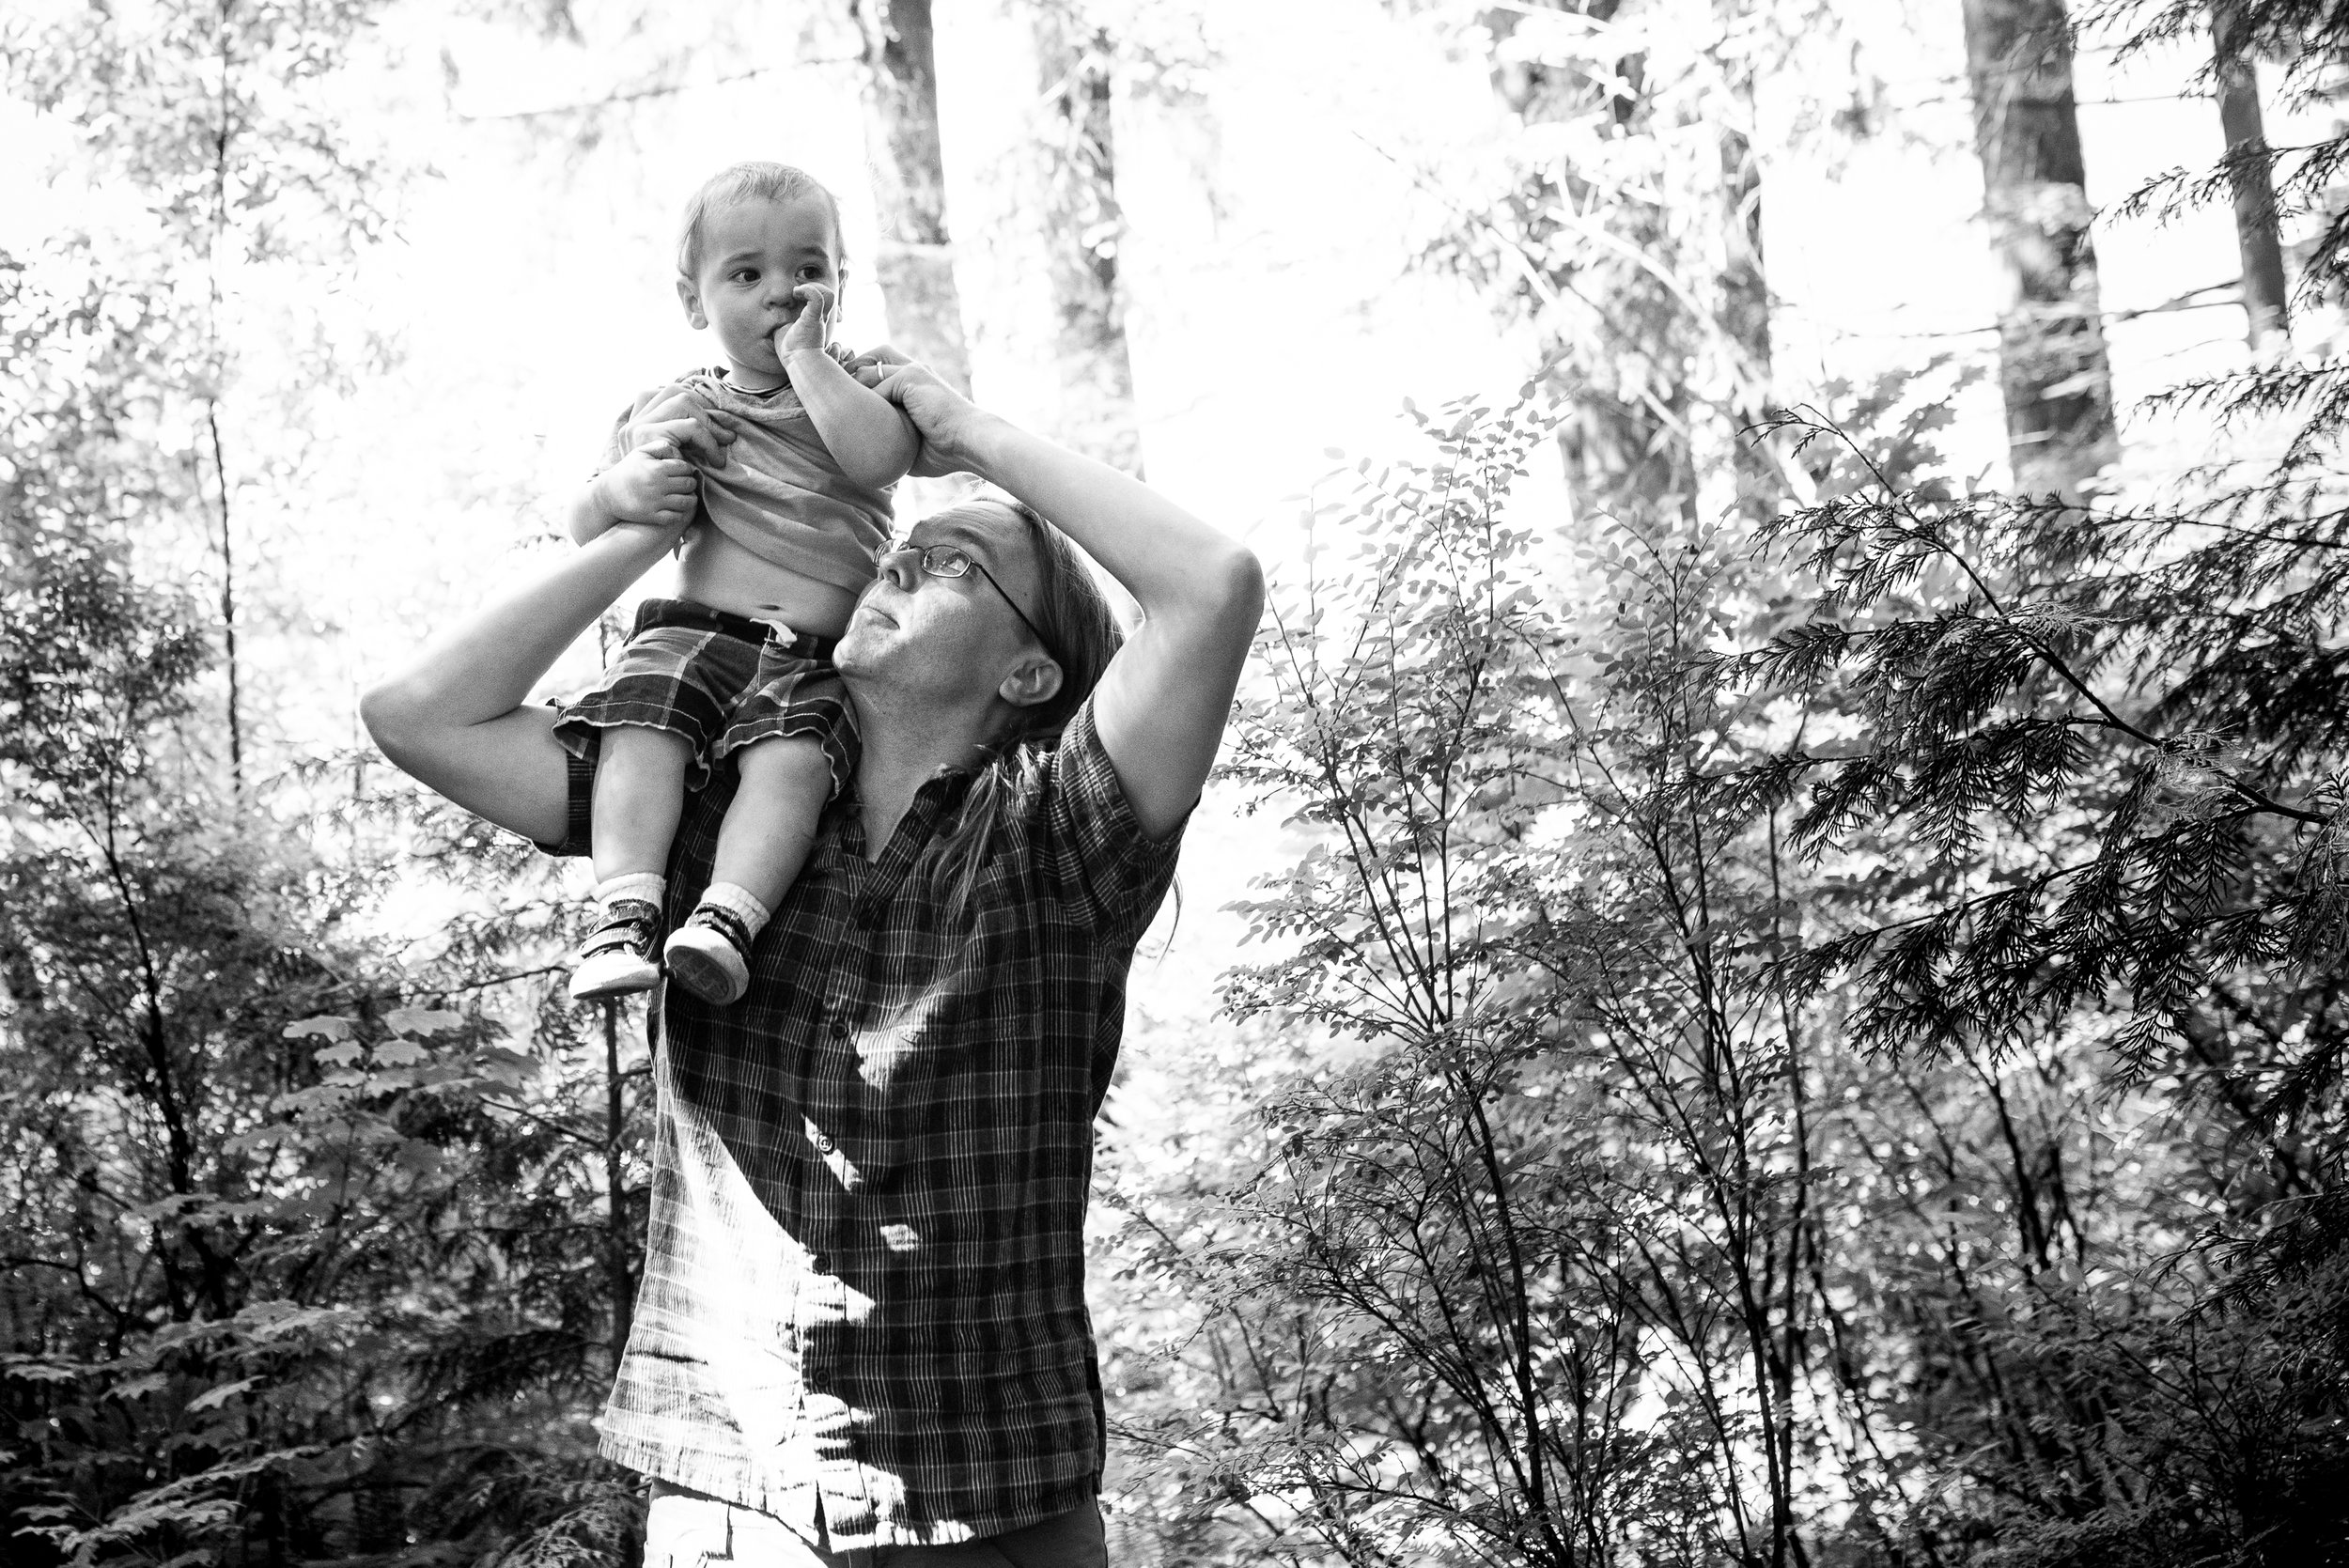 Dad carrying son on his shoulders before entering the forest in Burnaby, British Columbia.